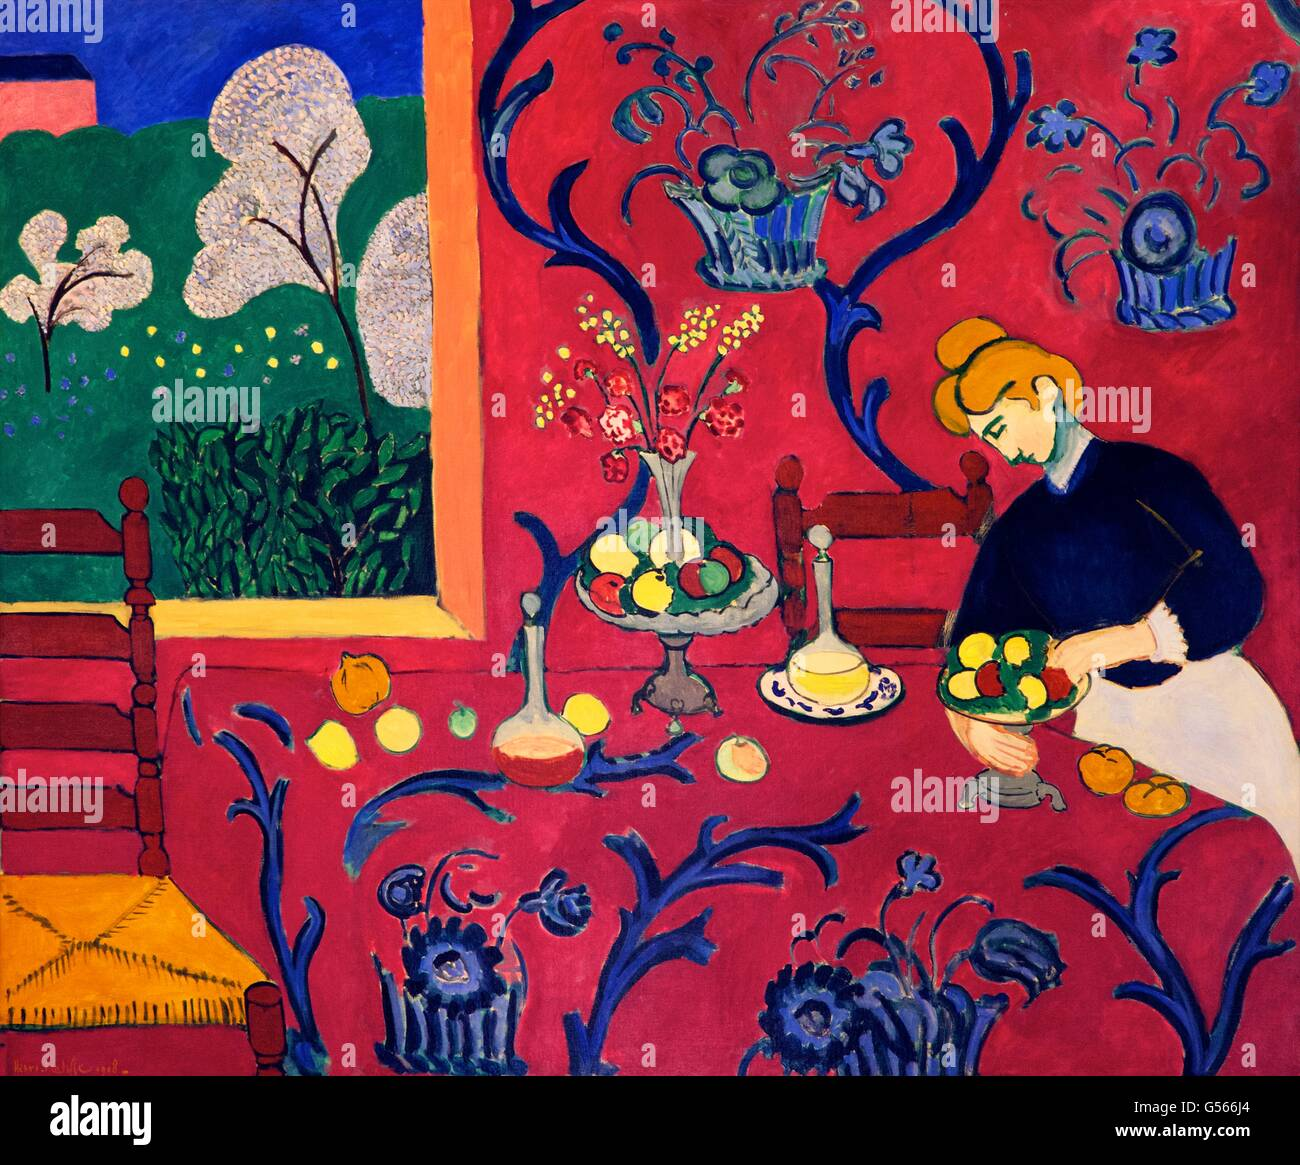 Red Room, Harmony in Red, by Henri Matisse, 1908, State Hermitage Museum, Saint Petersburg, Russia - Stock Image